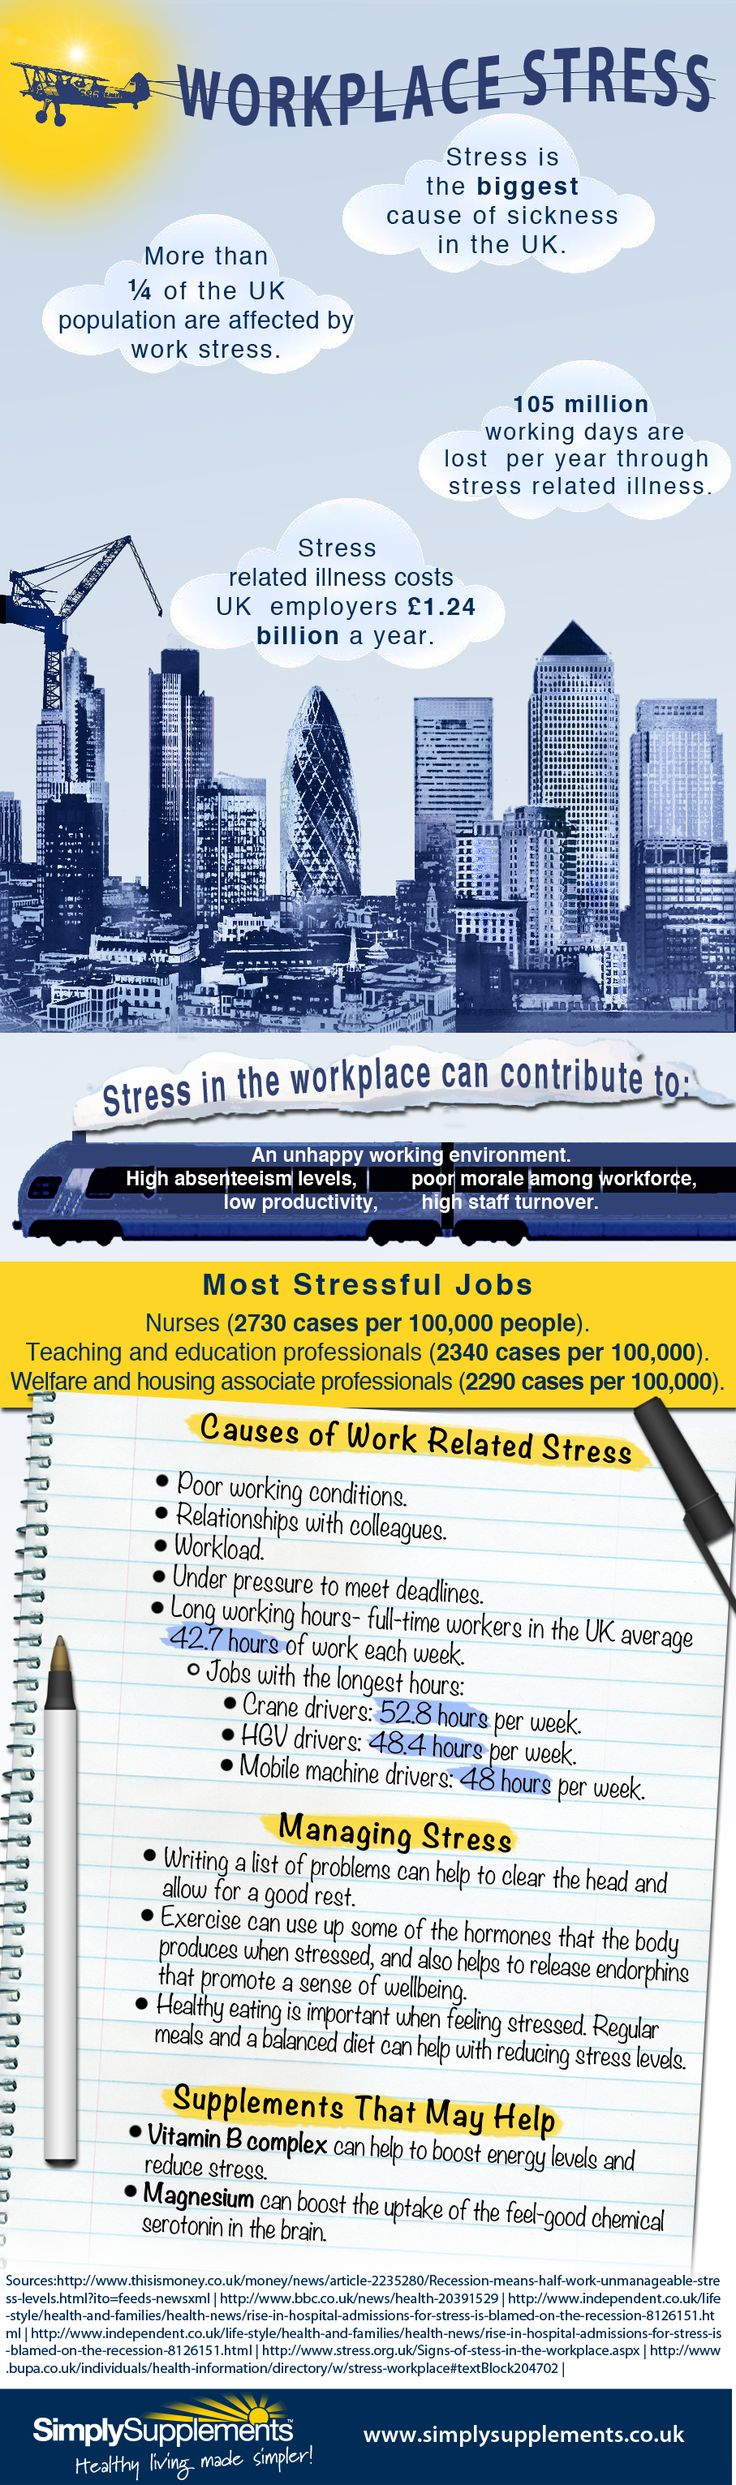 Find out the facts about workplace stress in the UK and the steps you can take to better manage stress.